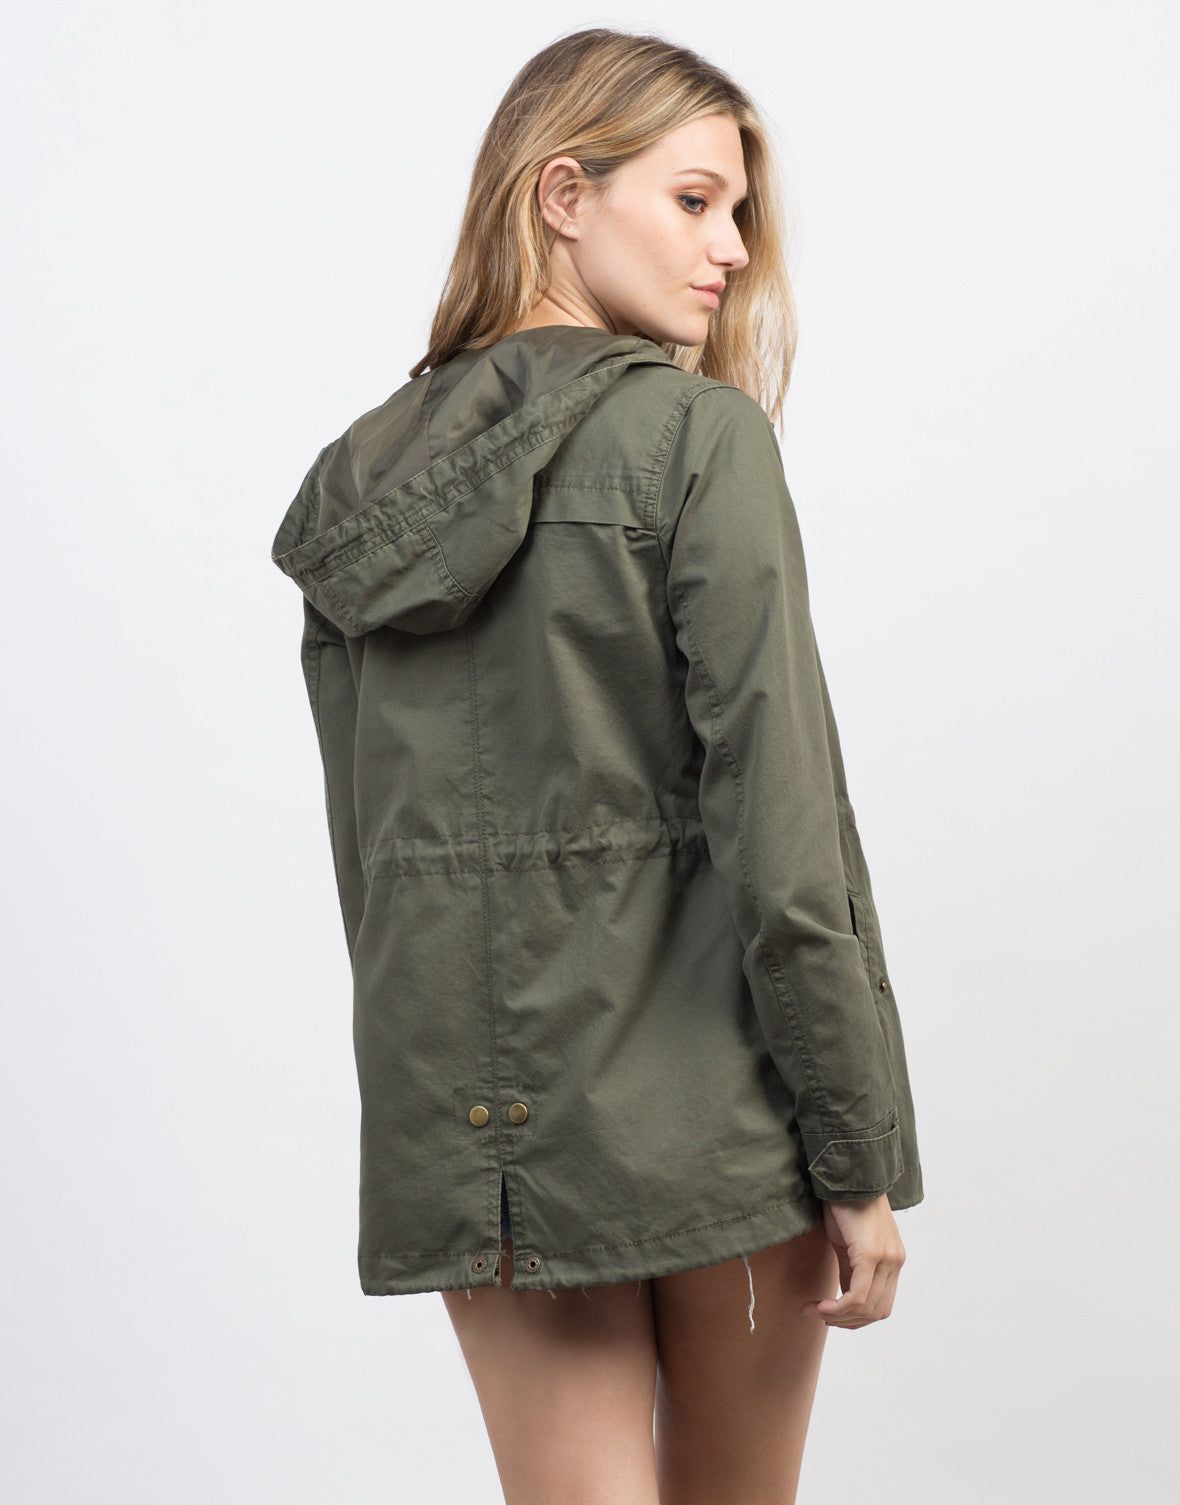 Back View of Drawstring Waist Hooded Military Jacket